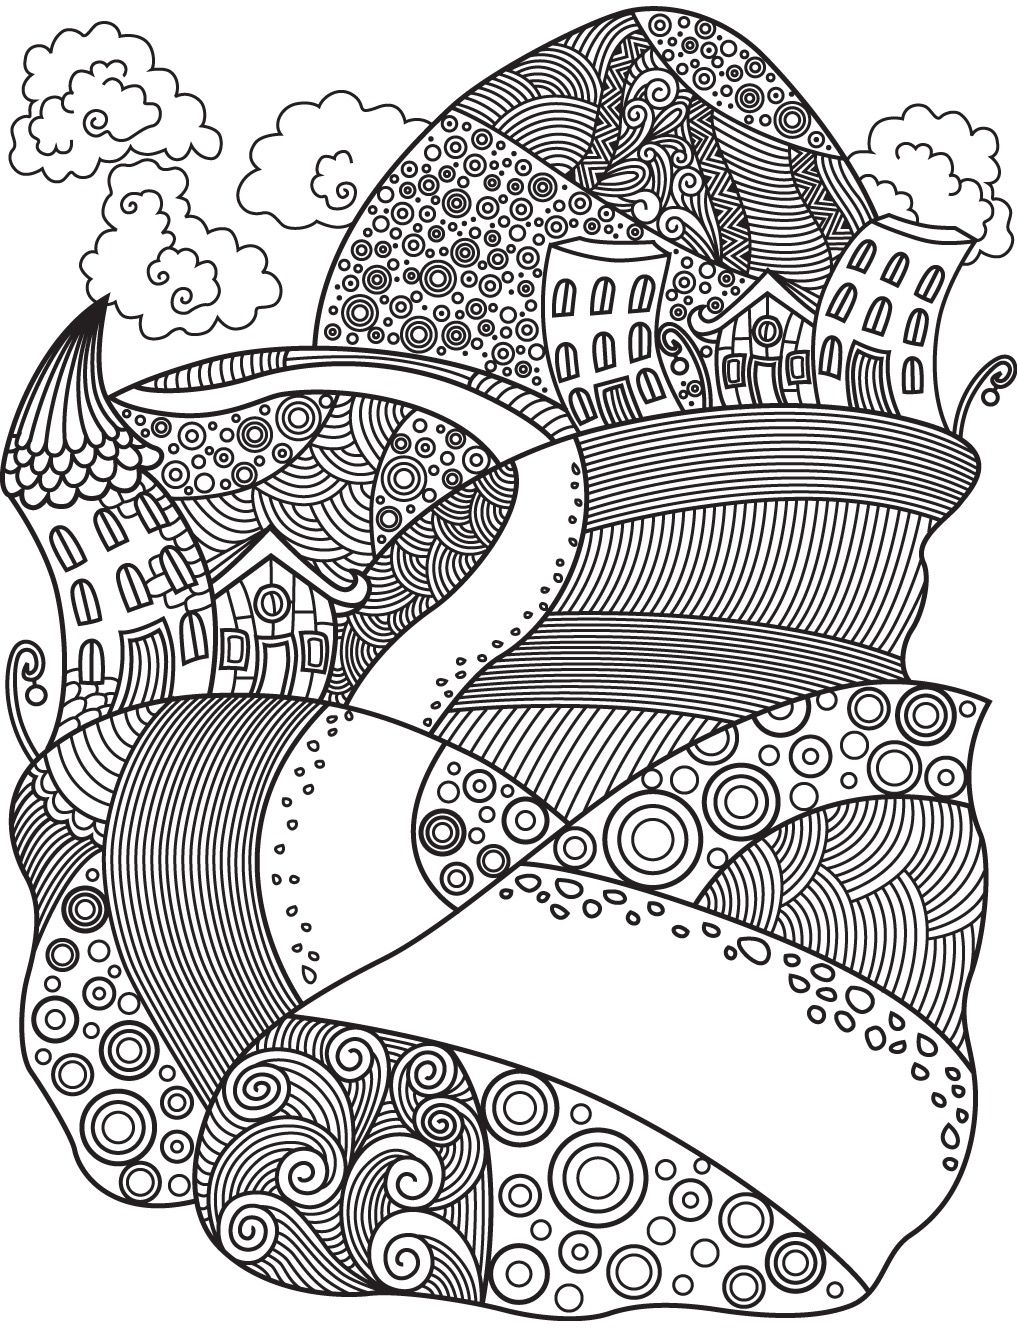 Coloring Pages Apps